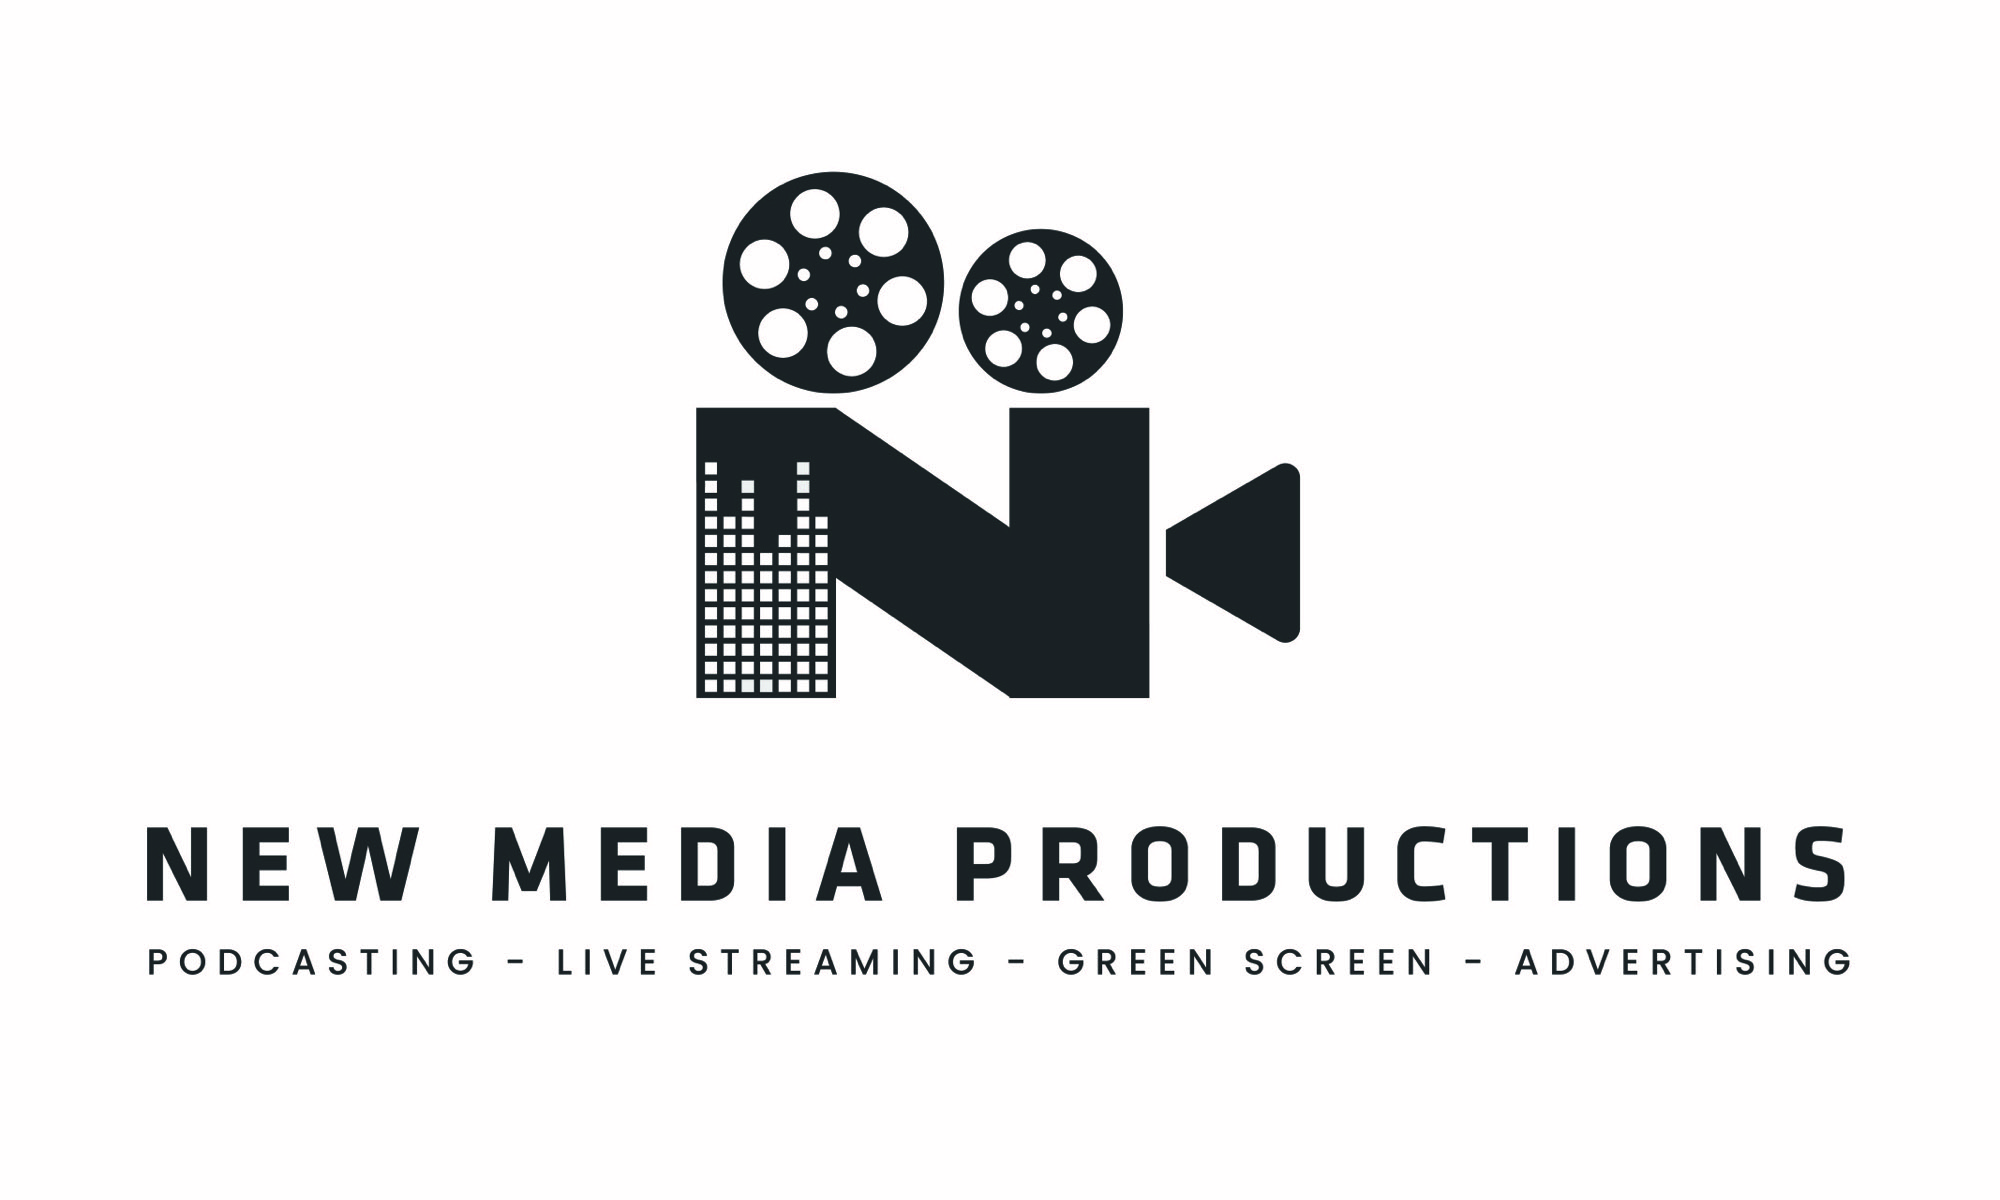 New Media Productions